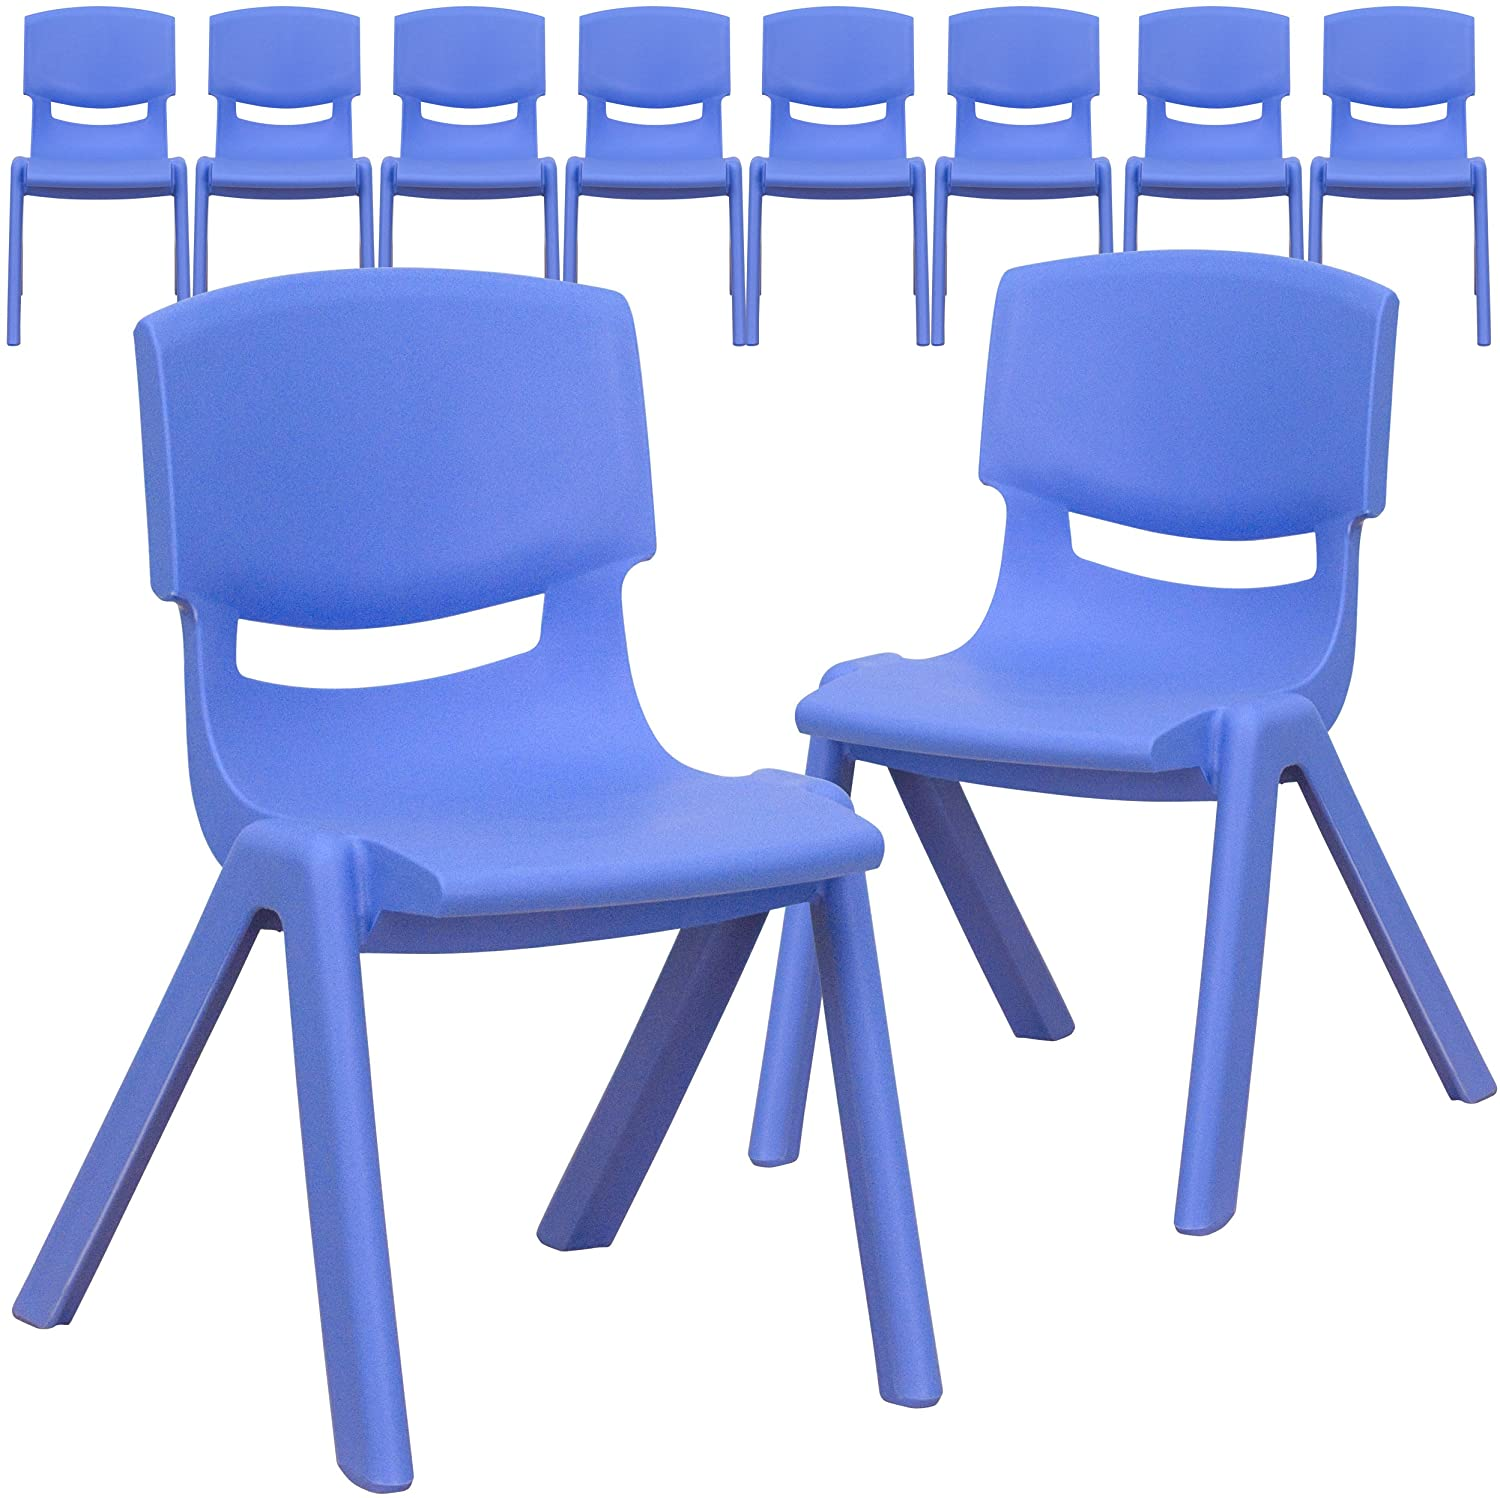 Flash Furniture 10 Pk. Blue Plastic Stackable School Chair with 12'' Seat Height